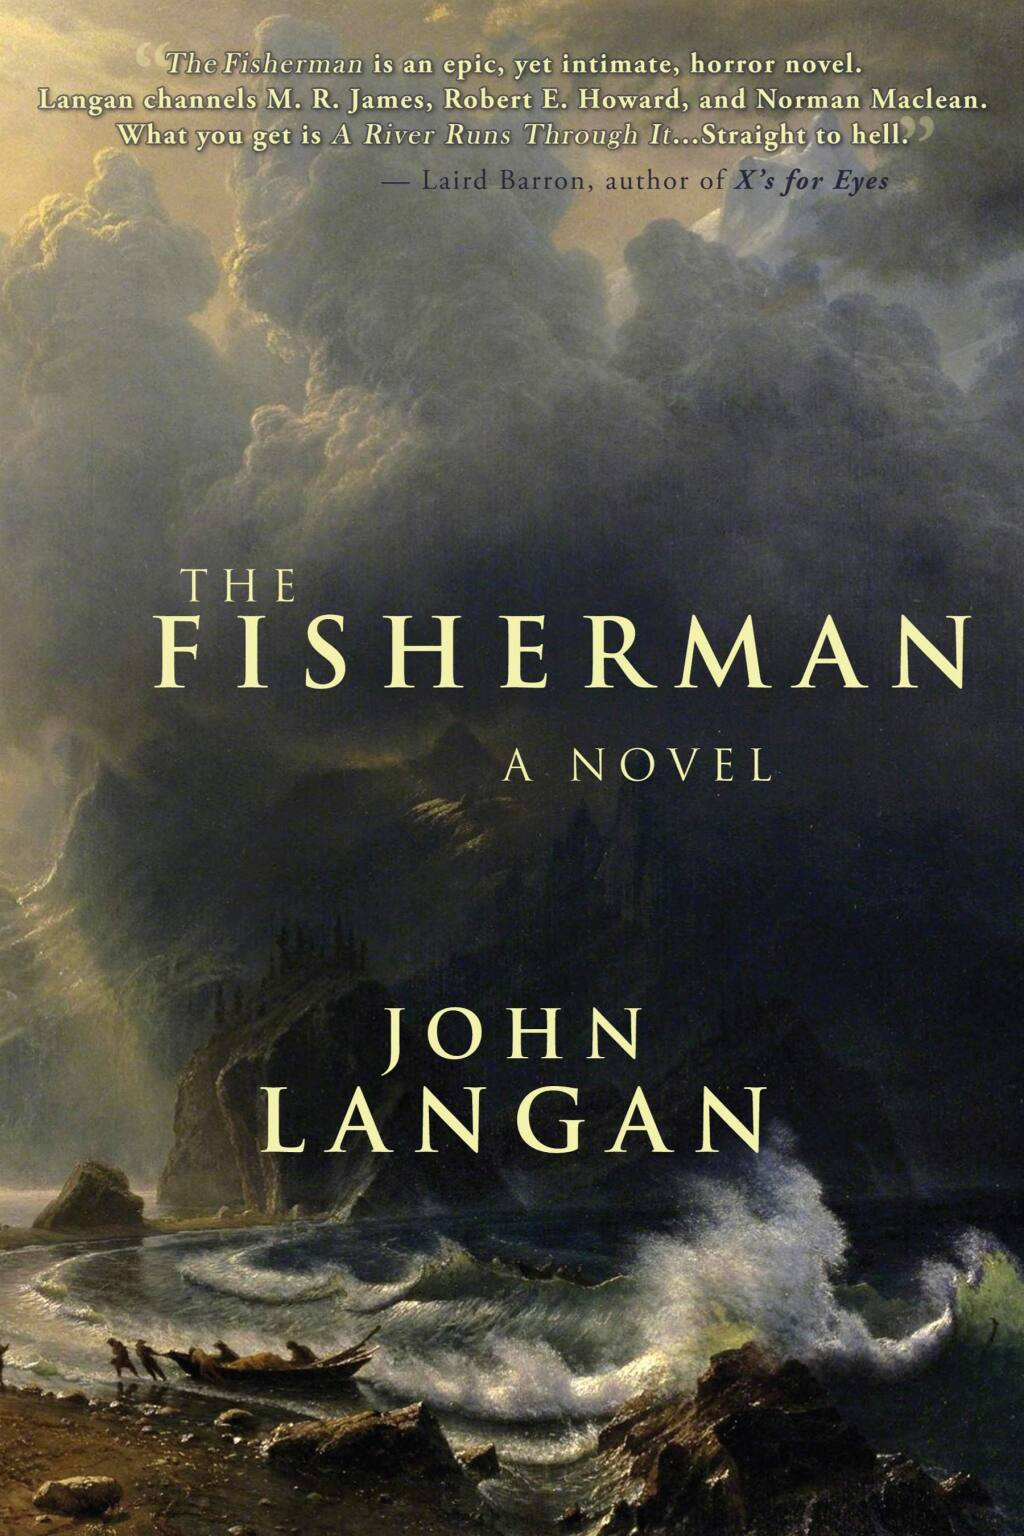 Petaluma's Word Horde Books' 2016 'The Fisherman' was just named the 15th best horror novel of the last decade.